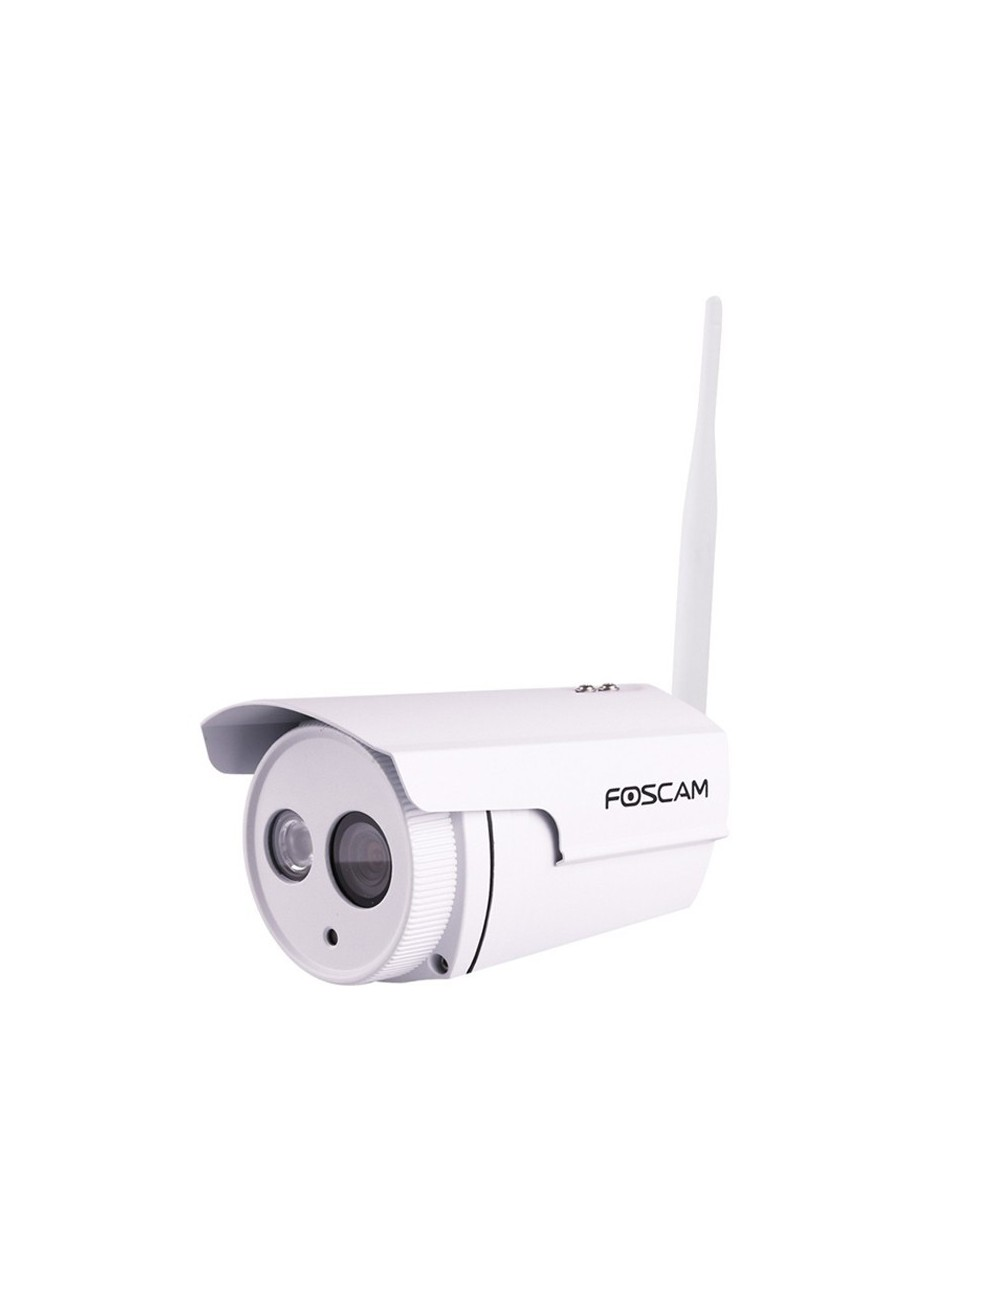 FI9803P 1.0 Megapixel Outdoor IP Camera